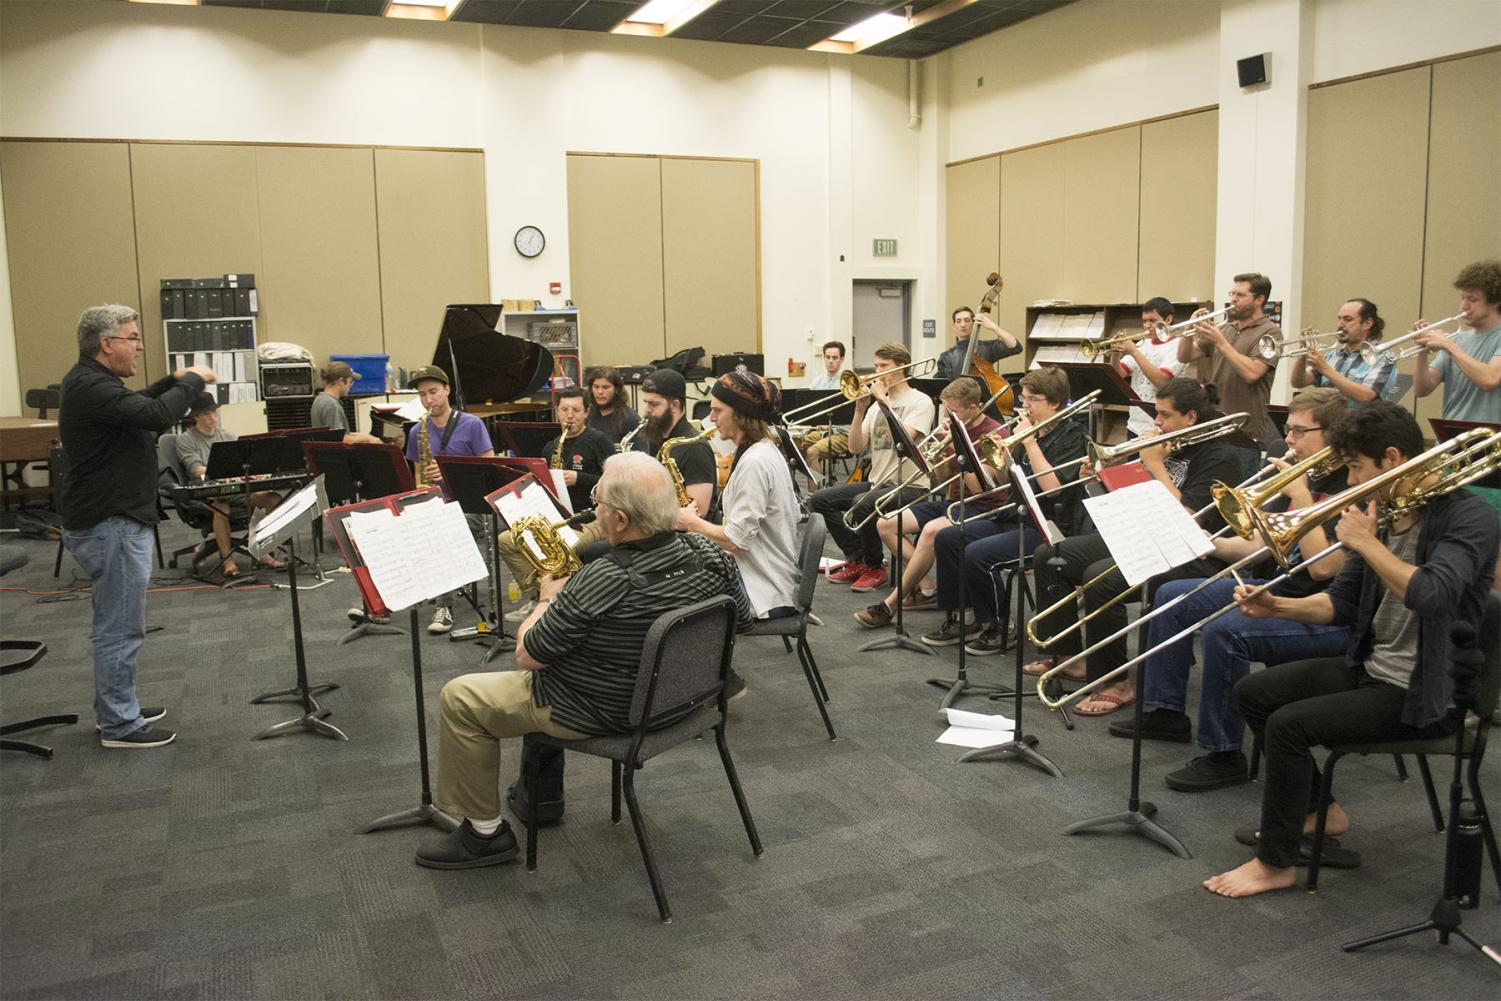 Students of SBCC's Jazz Ensemble practice for their Big Band Blowout Concert happening Monday, April 22, 2019, in the Garvin Theater, on Thursday, April 18, 2019, in the Drama and Music Building Room 105 at City College in Santa Barbara, Calif.